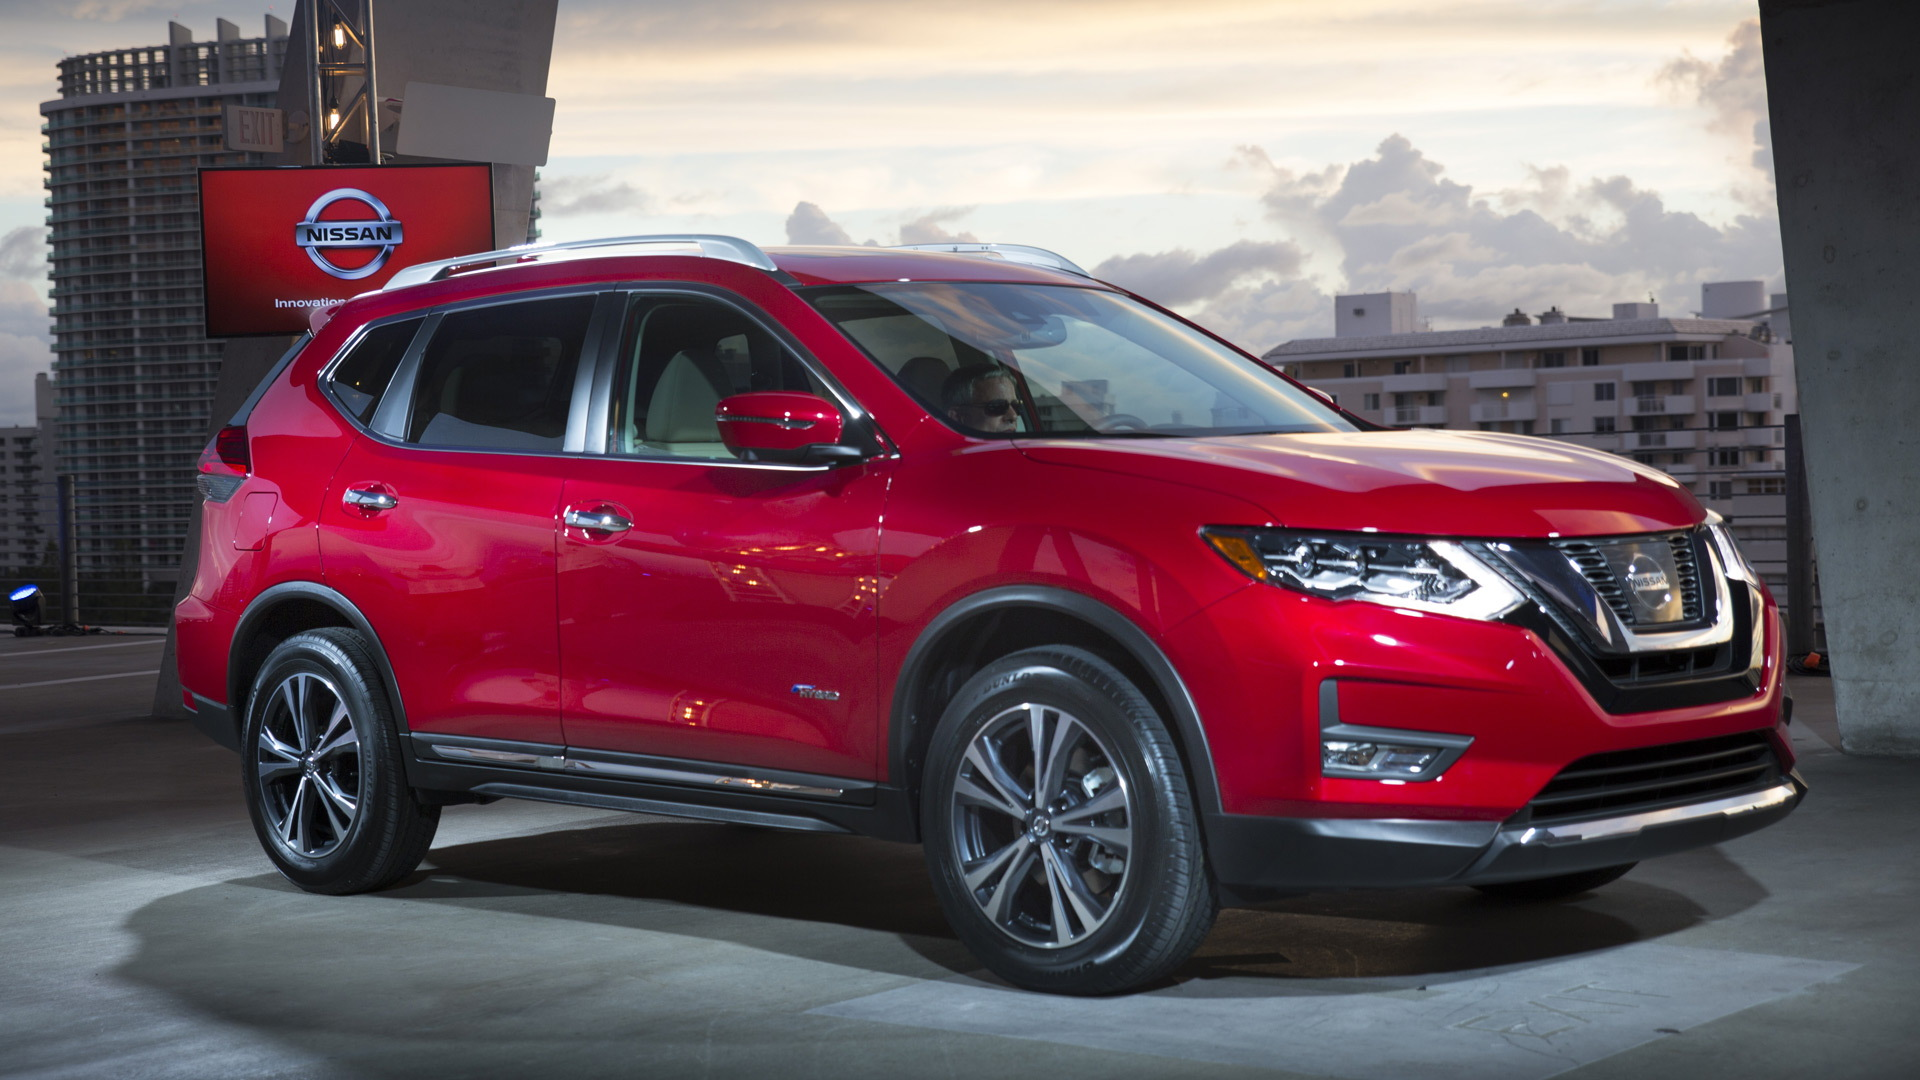 2017 Nissan Rogue Hybrid Better Prospects Than Pathfinder Murano For Small Hybrid Suv